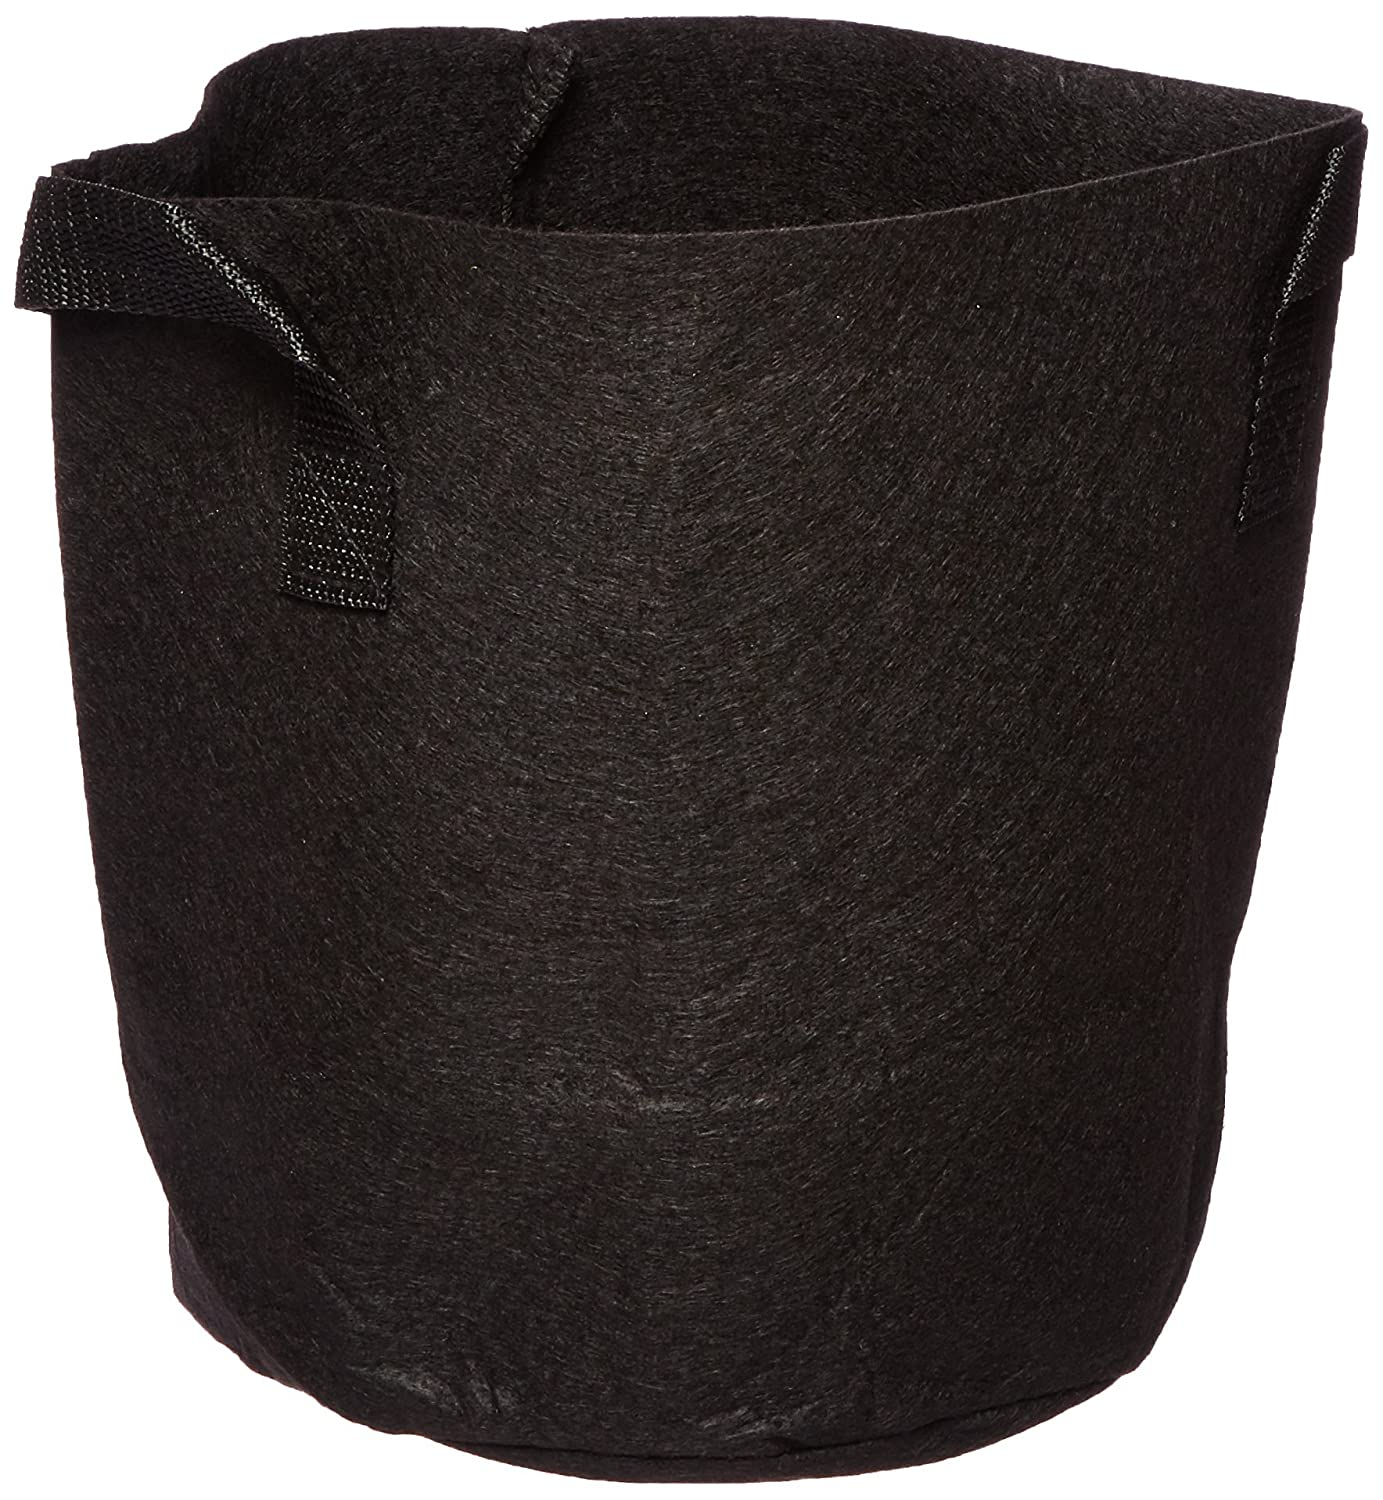 Viagrow Breathable Fabric Root Aeration Pot with Handles 10 Pack , 2 Gallon